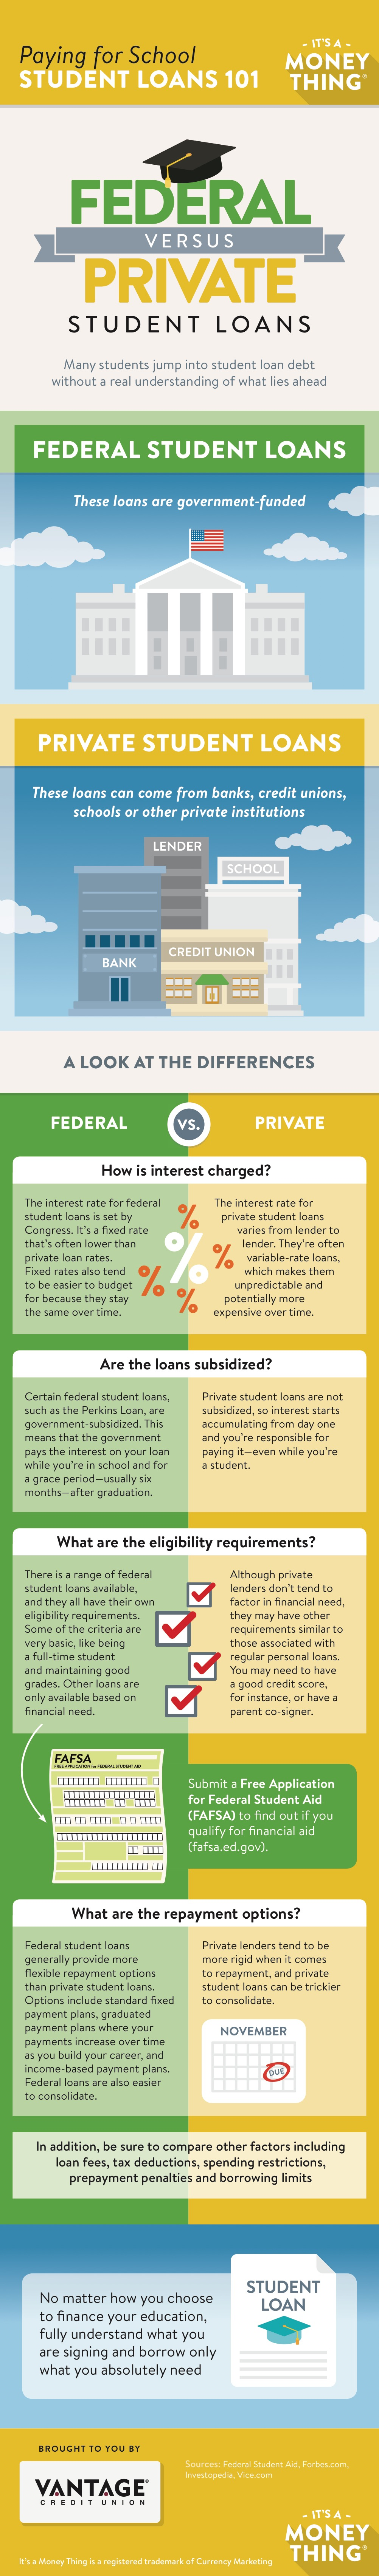 It's A Money Thing: Student Loans 101—Infographic